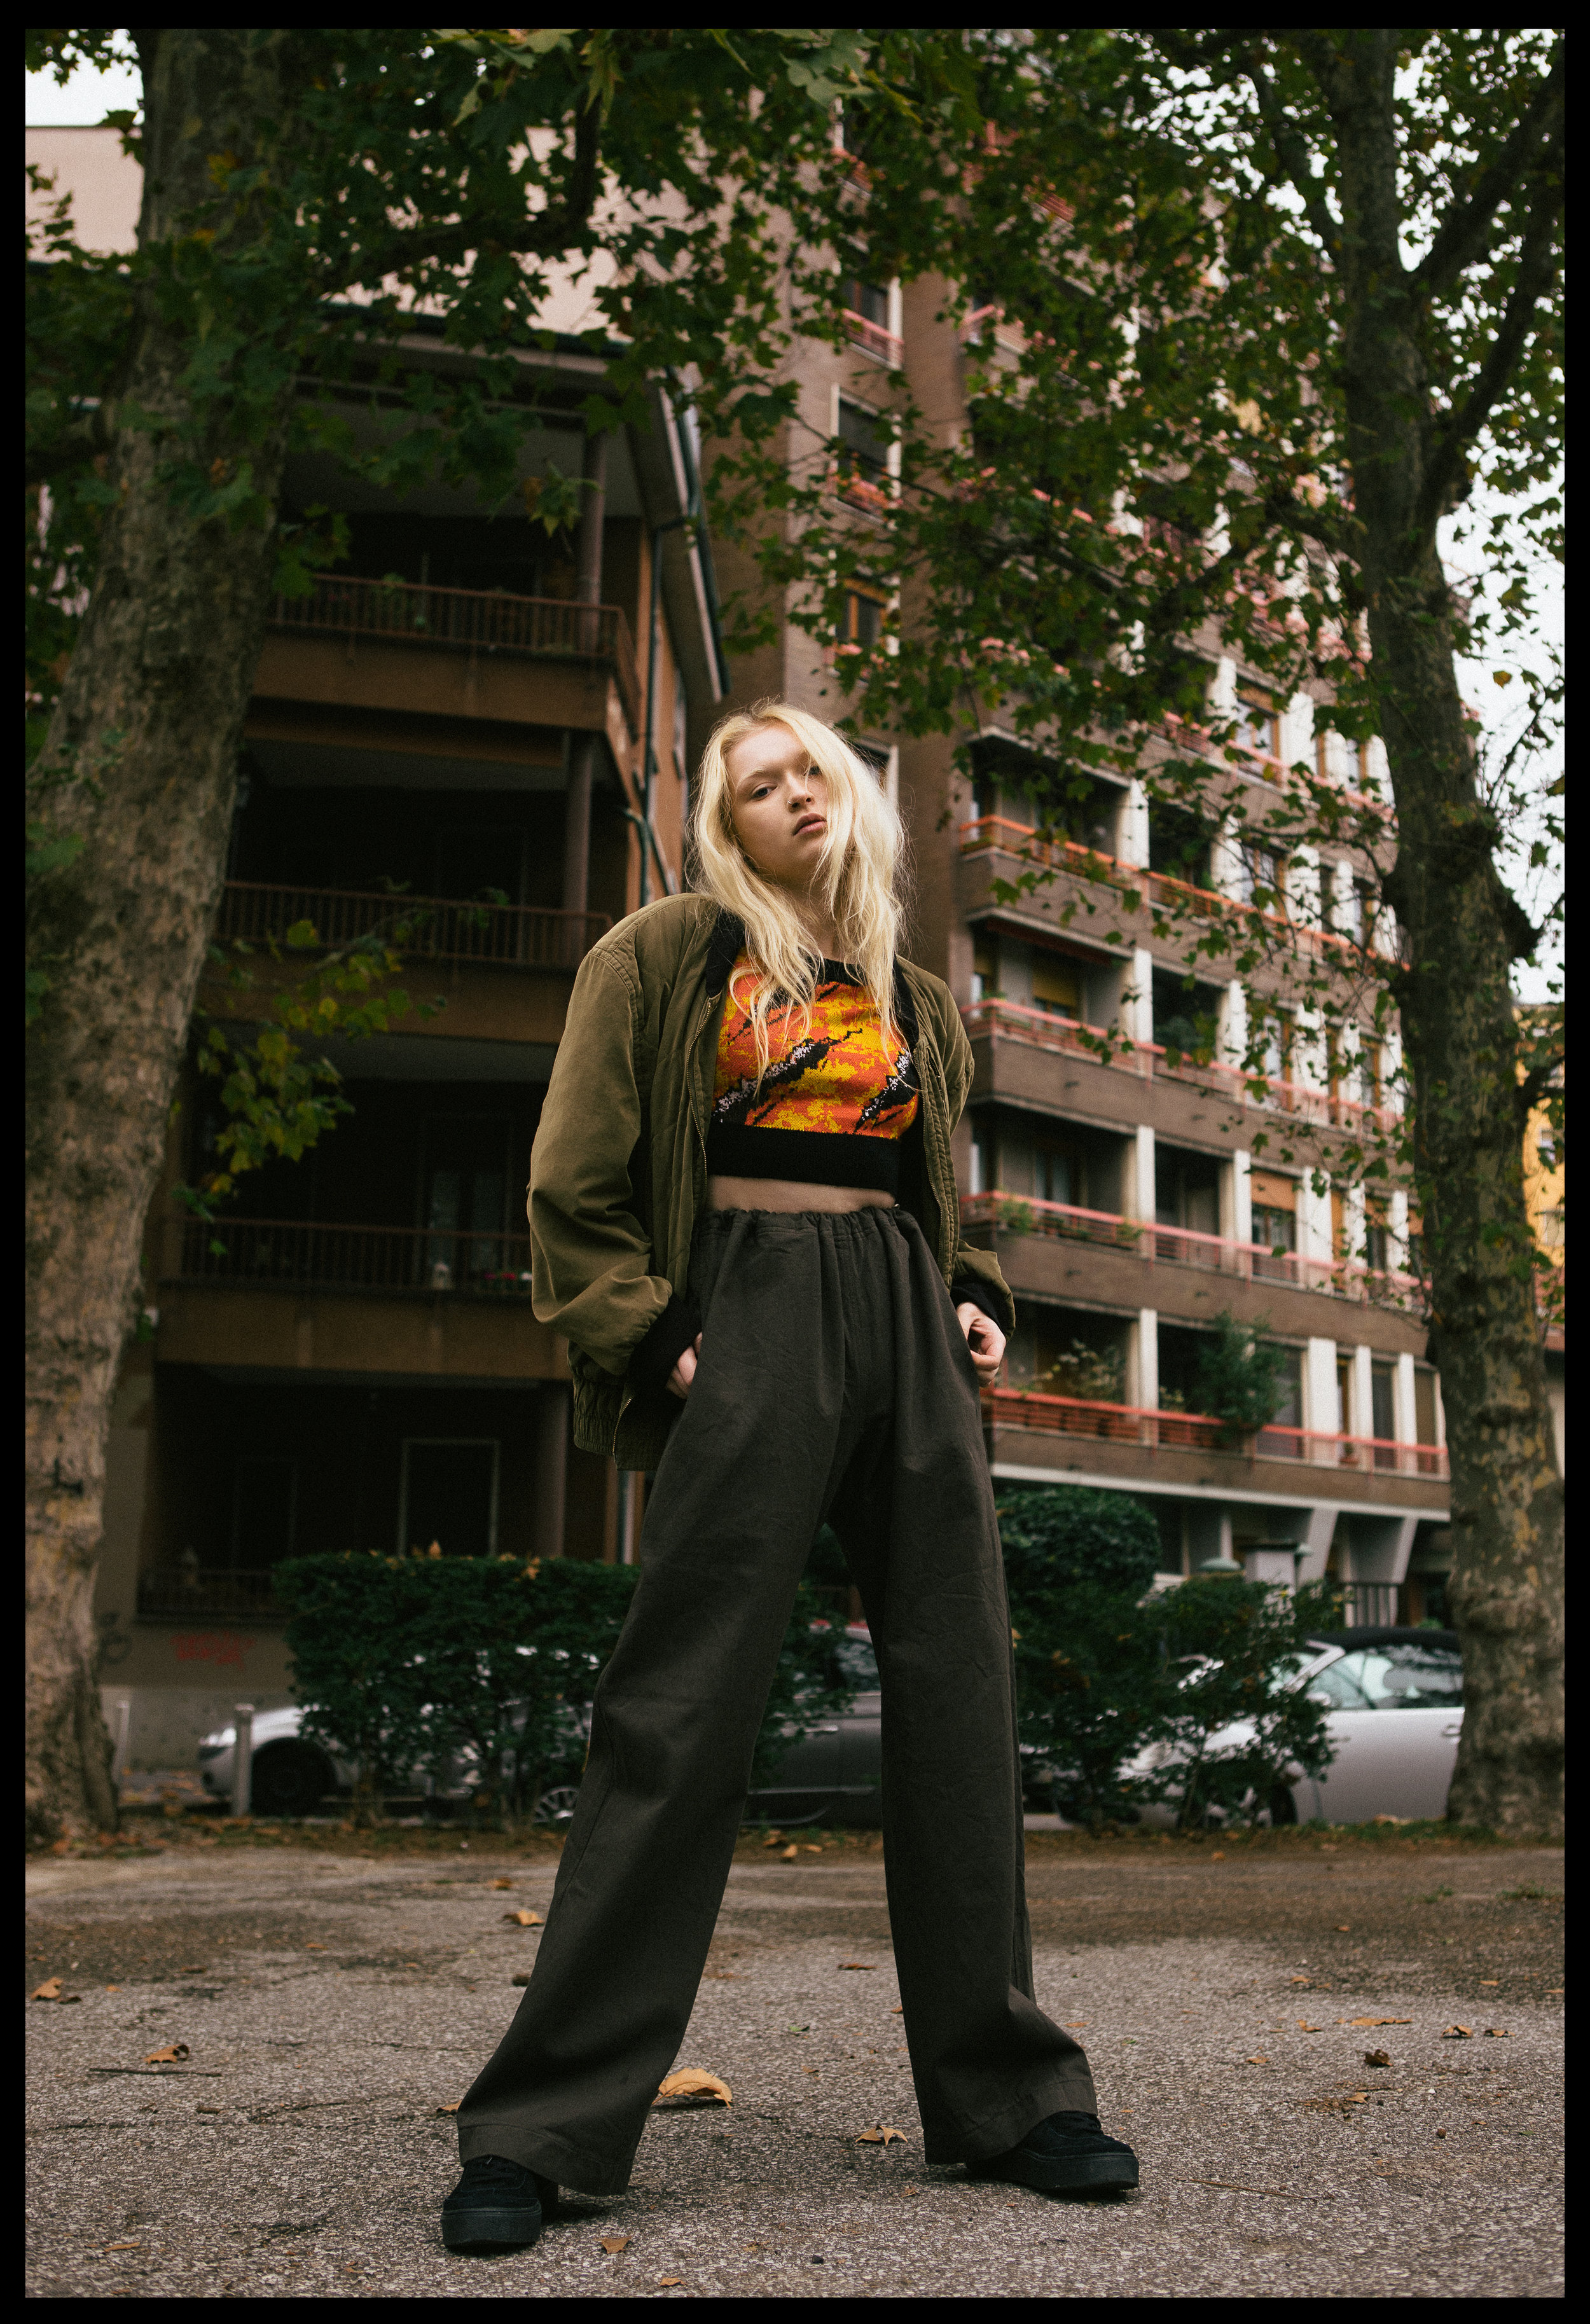 jacket VINTAGE, top  ASSK , trousers  MARNI , sneakers STYLIST'S OWN